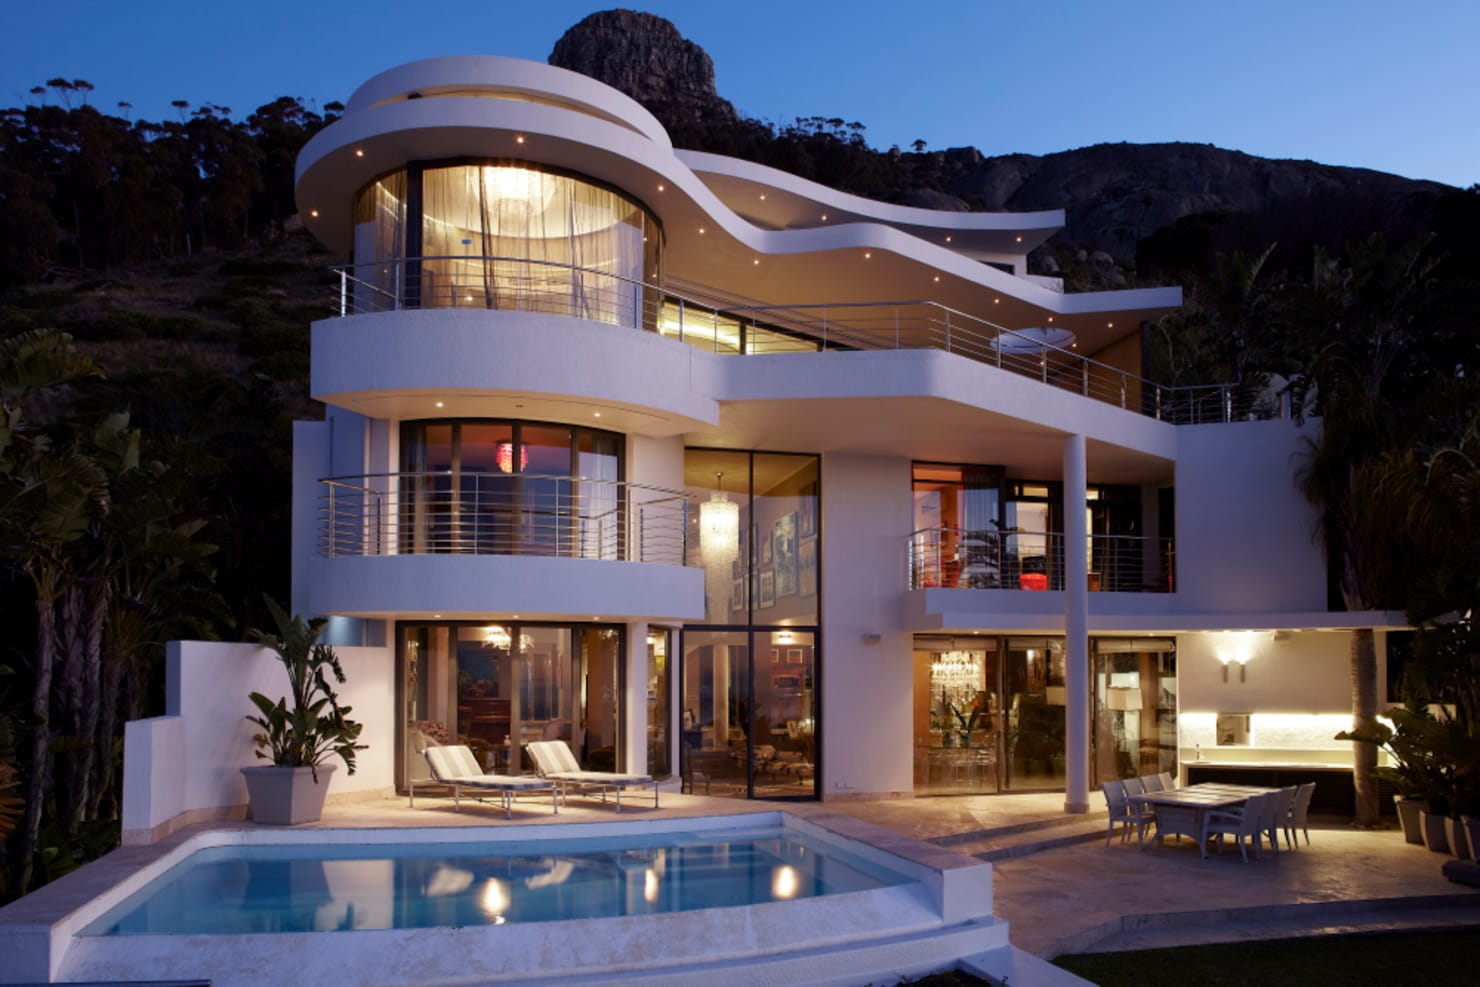 Explore this stunning South African home with us